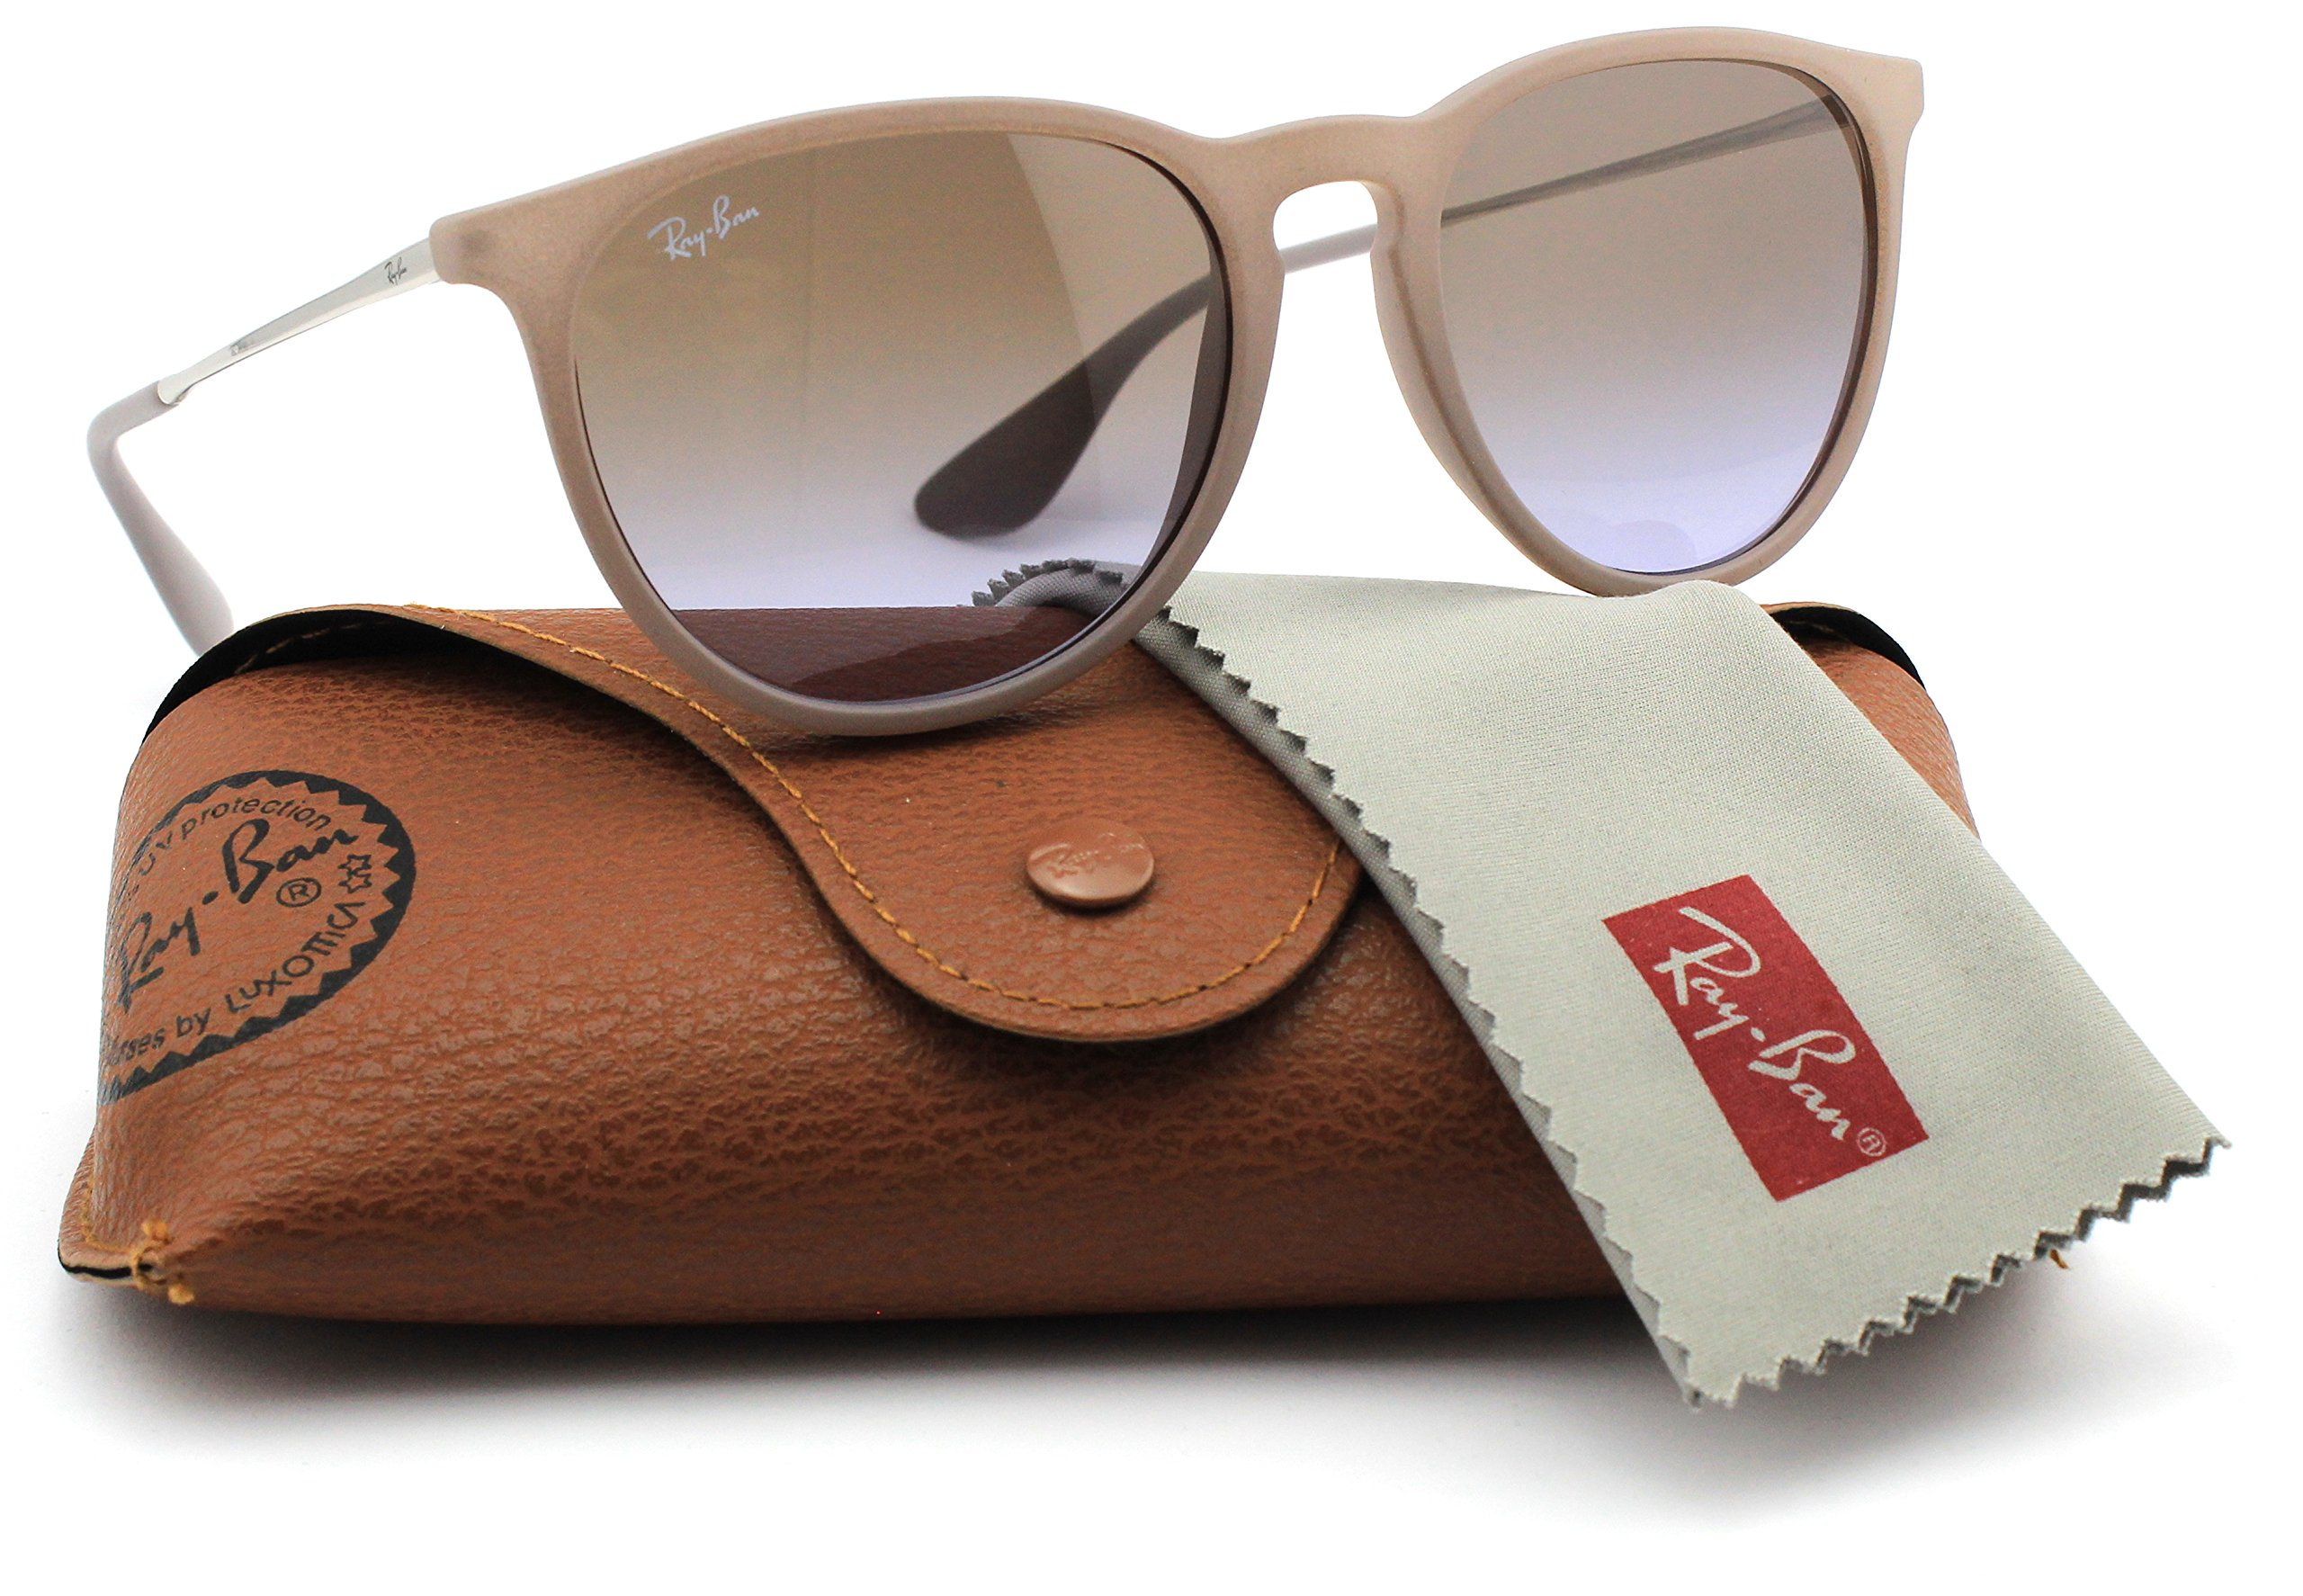 Ray-Ban RB4171 600068 Erica Sunglasses Dark Rubber Sand Frame   Brown  Gradient Lens 21a1777a4781